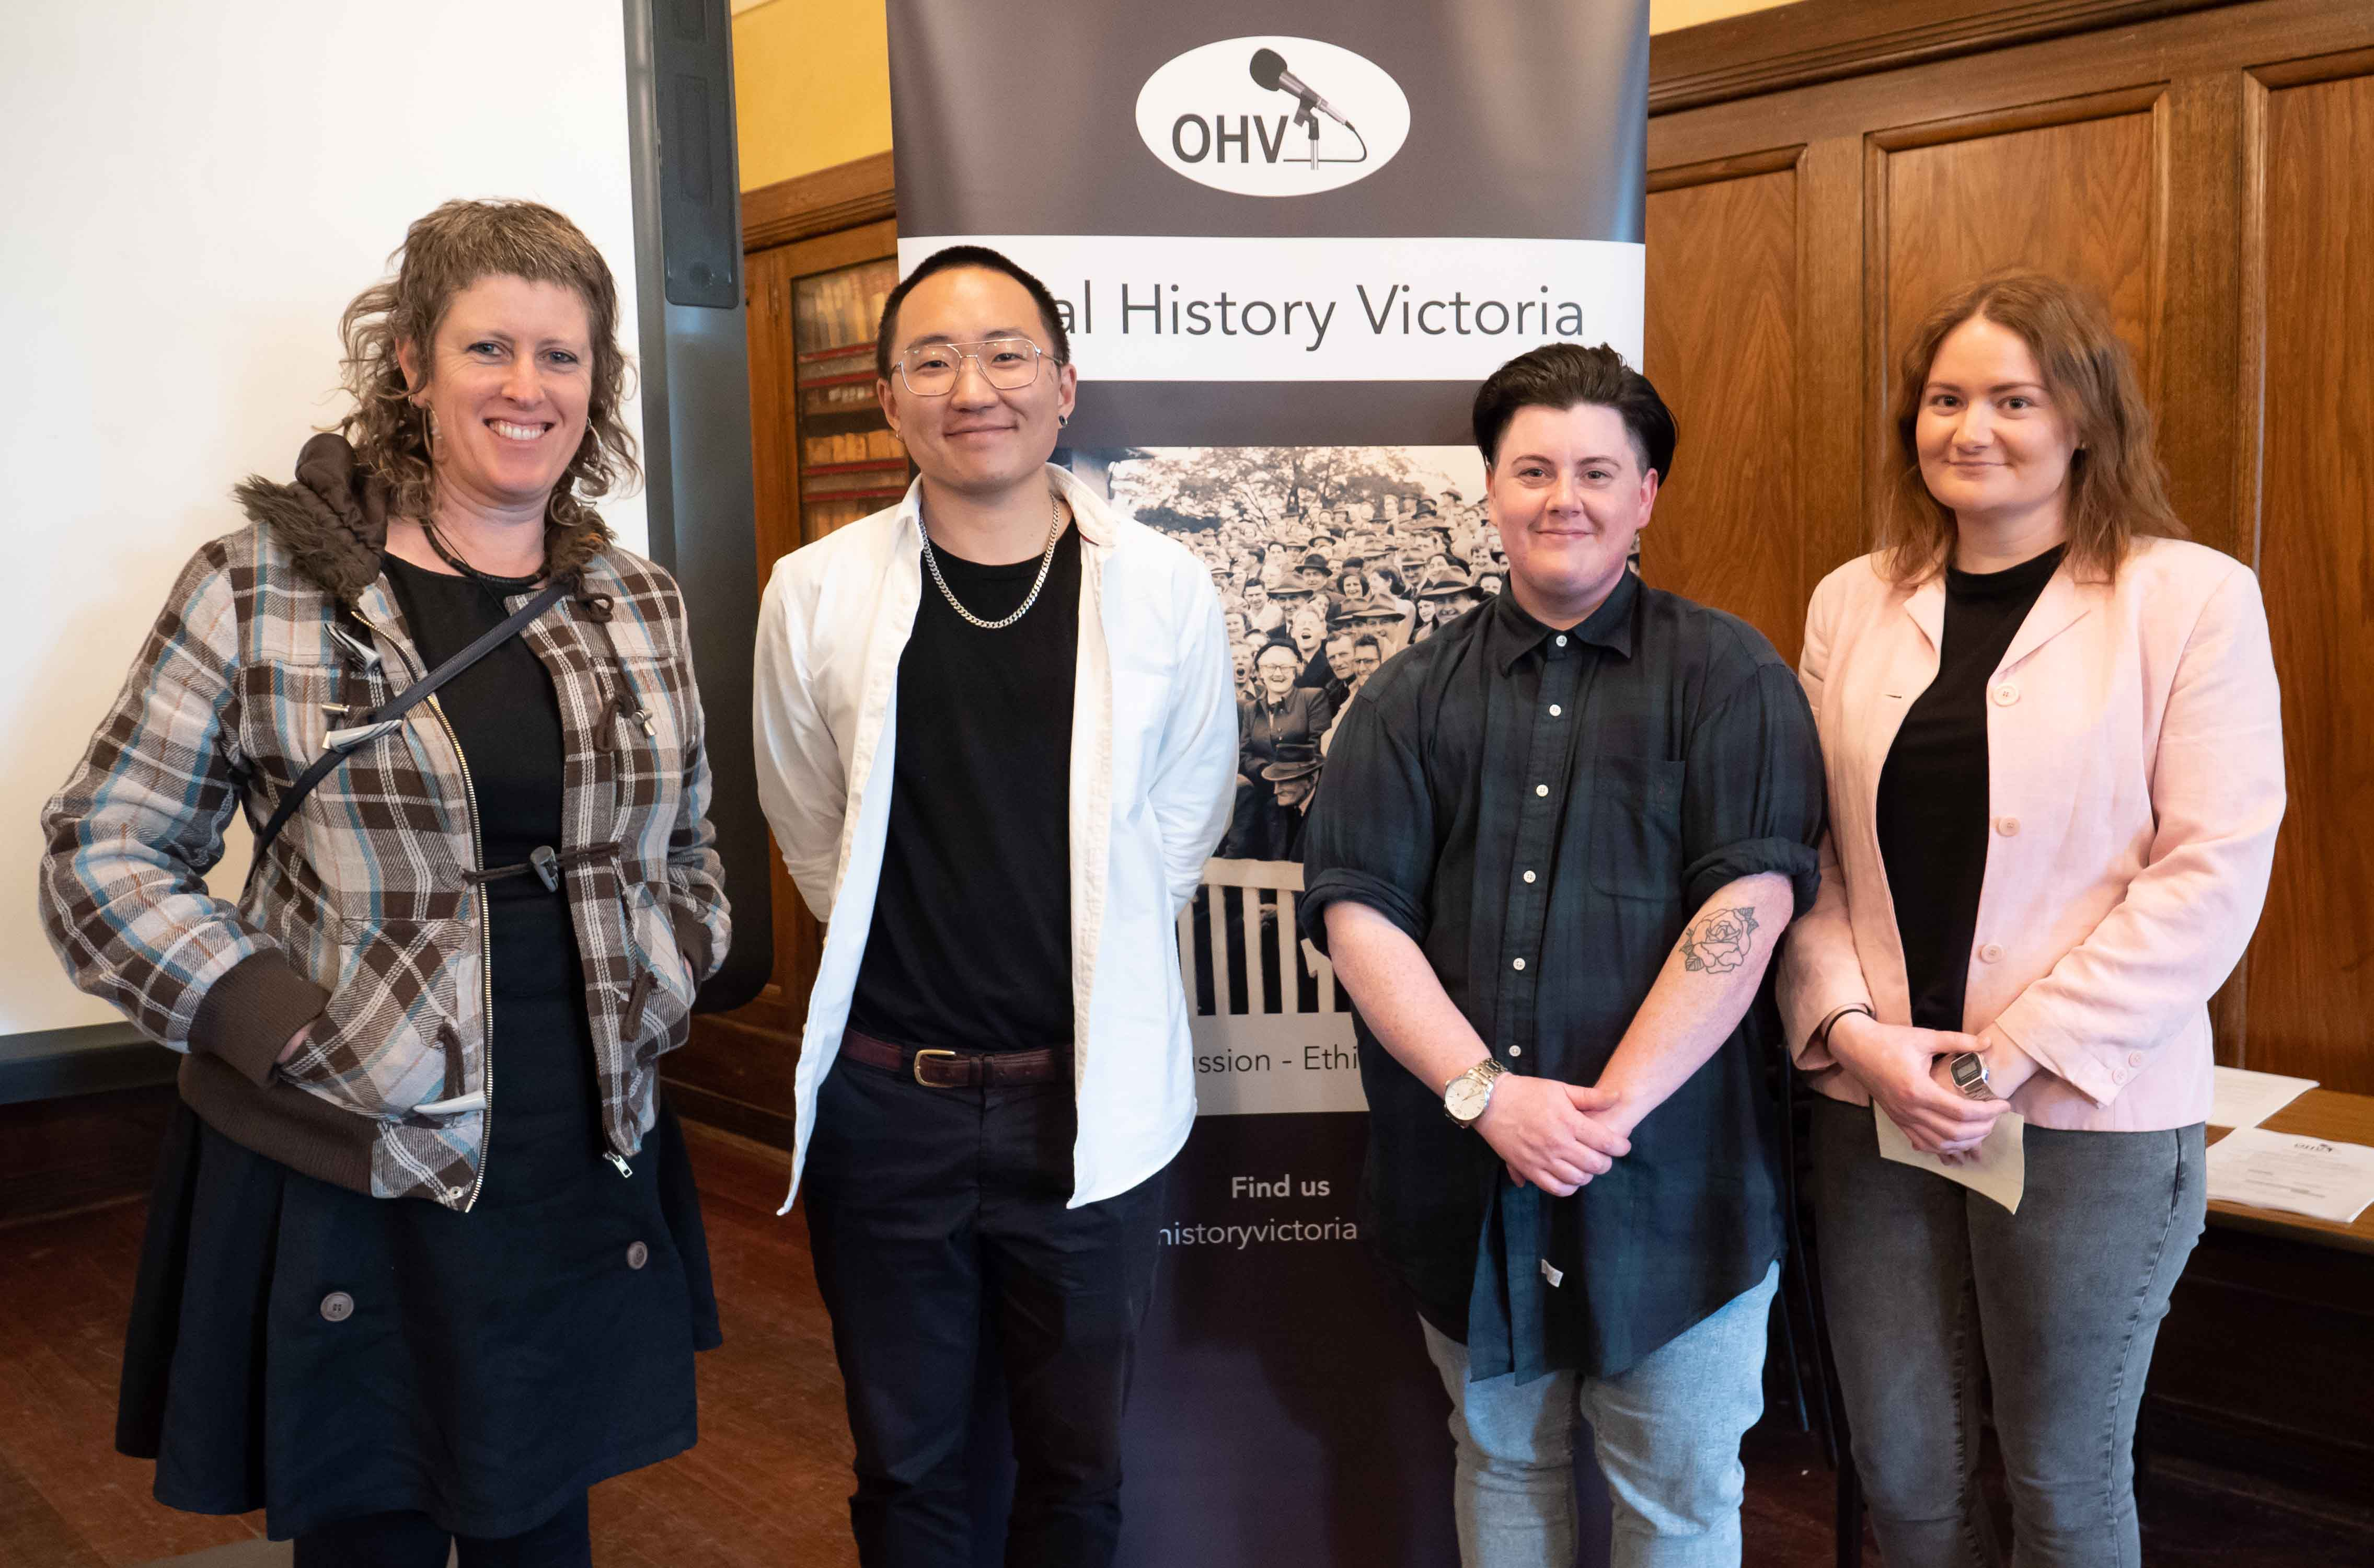 Image of the award-winning oral historians, speakers at the June 2019 seminar